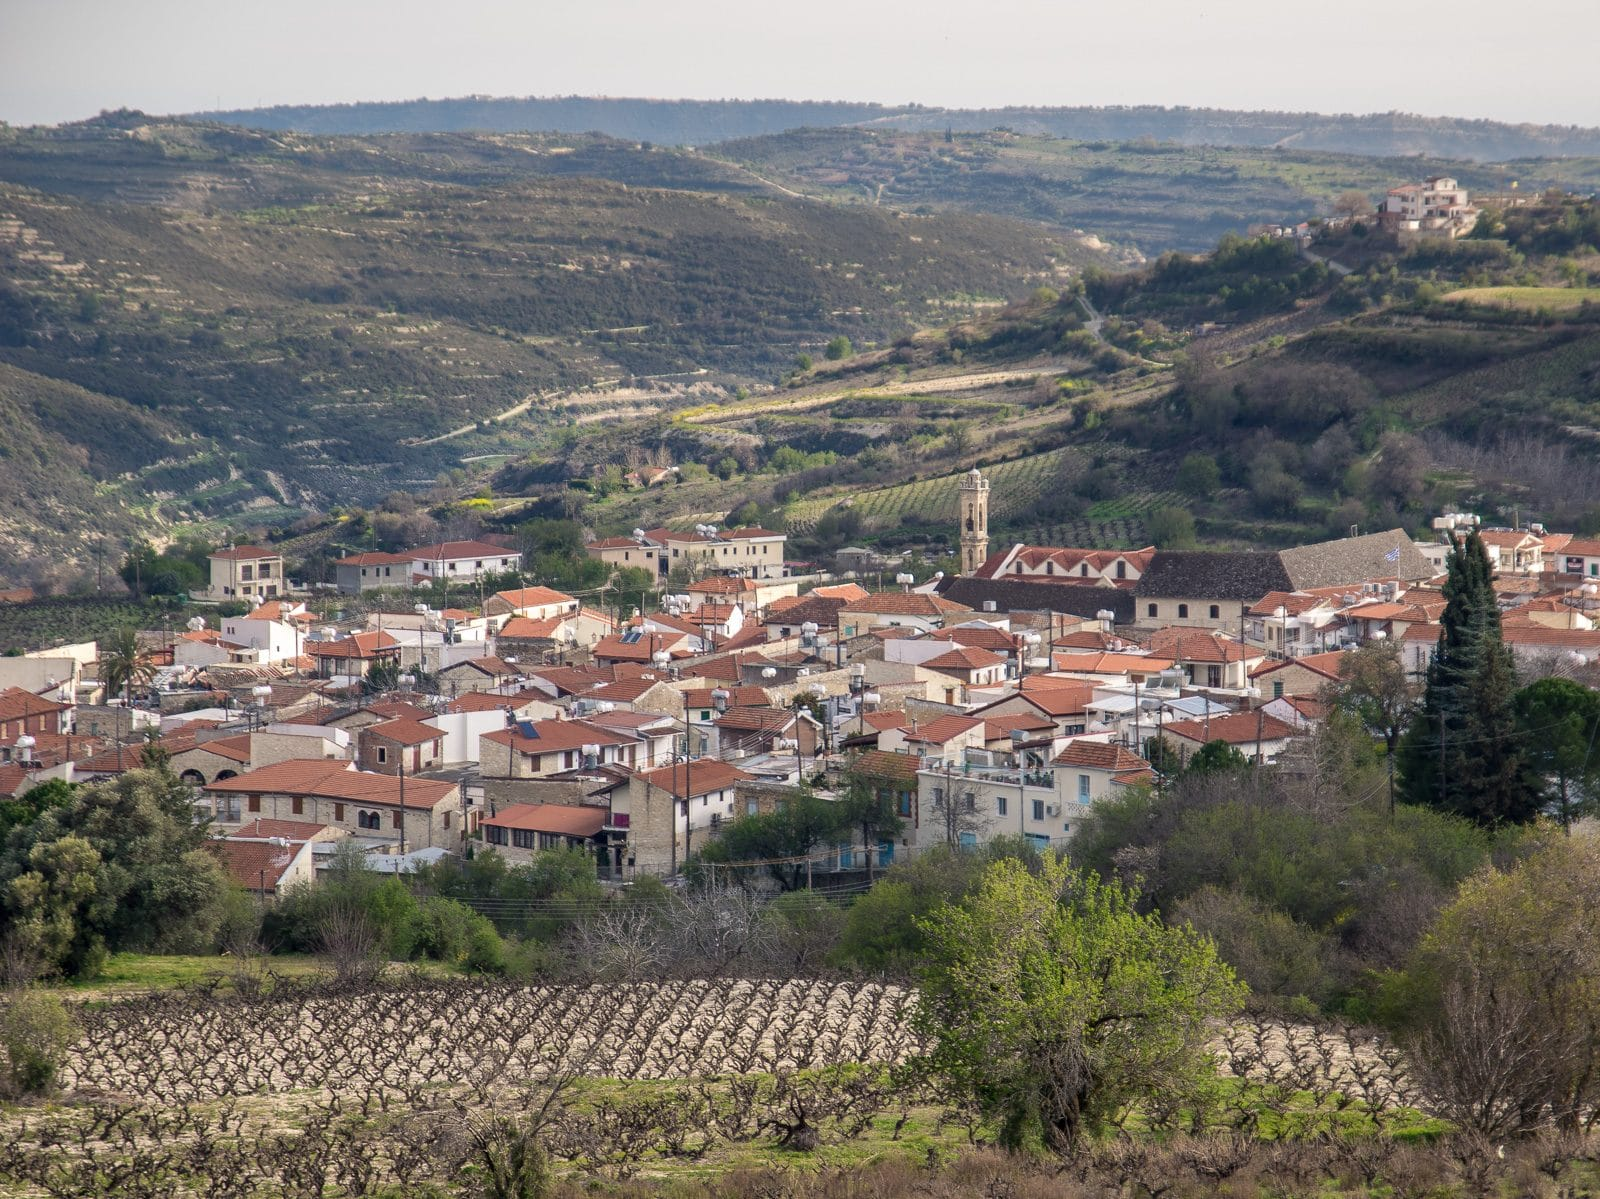 omodos wine village from a distance